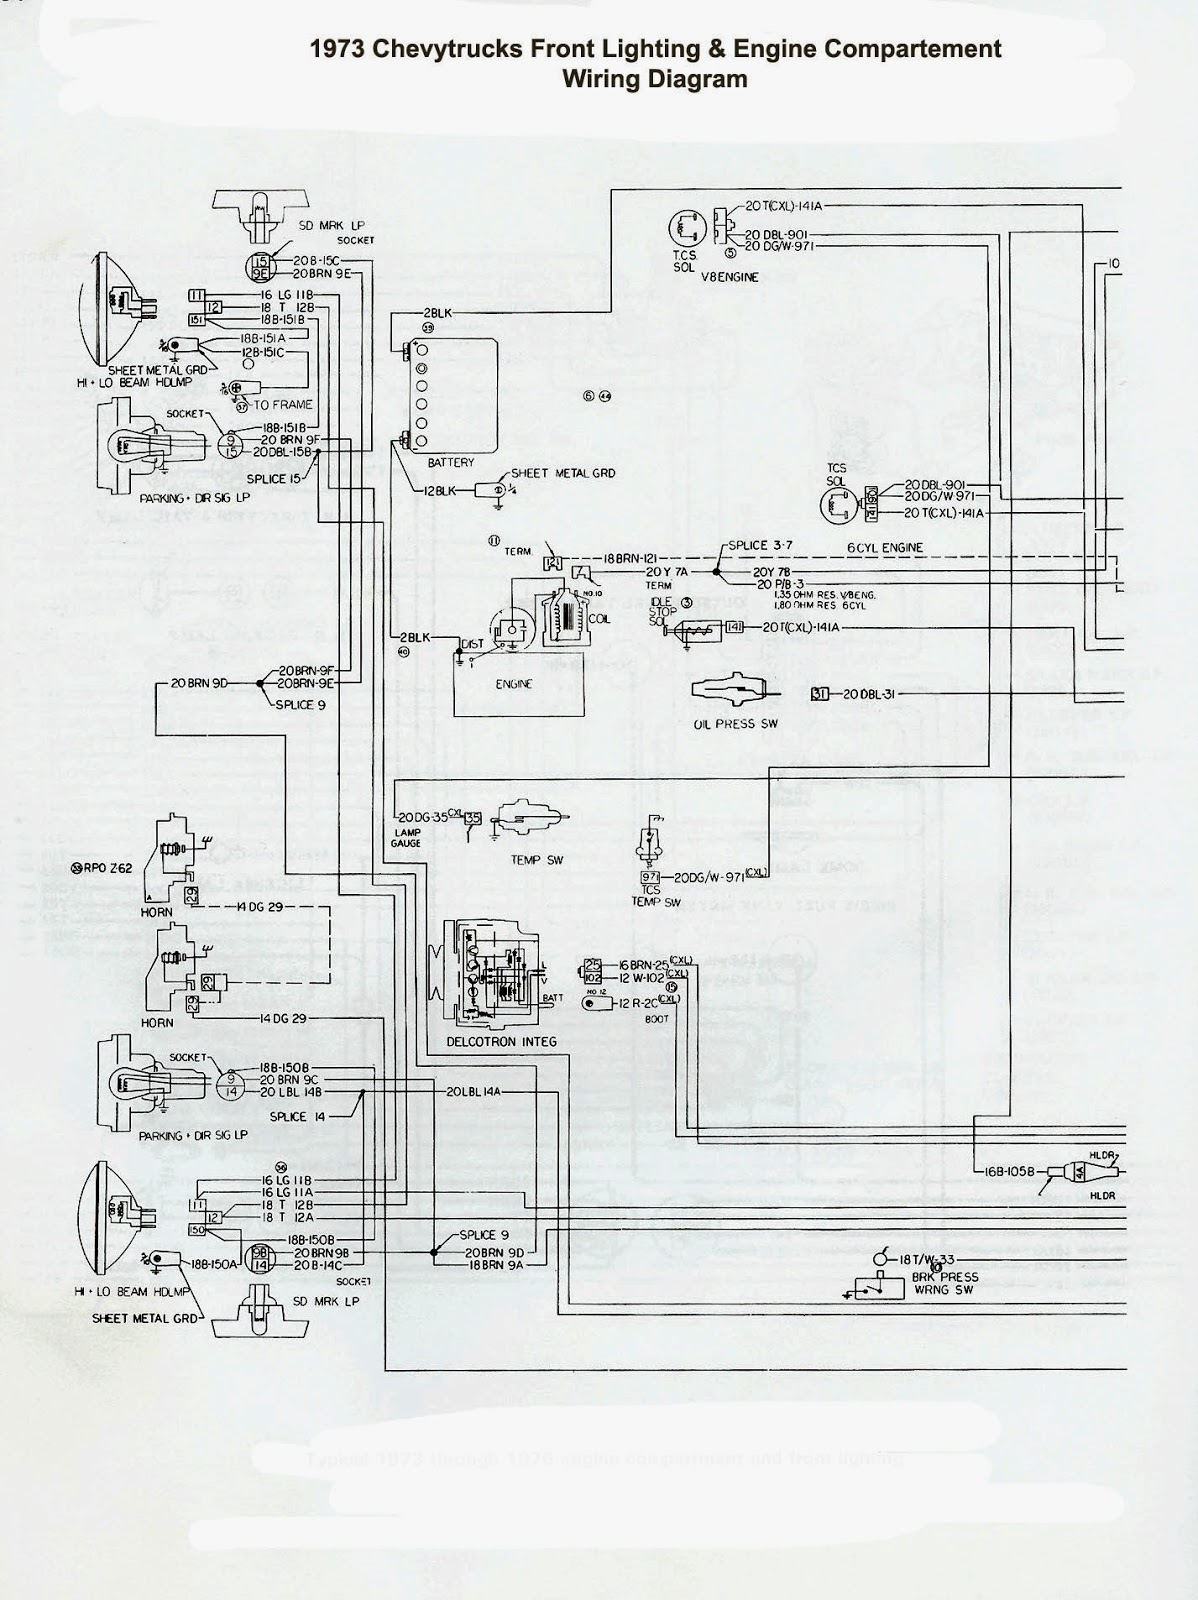 chevytruks.+engine+n+frontlight73 76_eng_frt_light+copy electrical winding wiring diagrams 1976 trans am wiring diagram at crackthecode.co